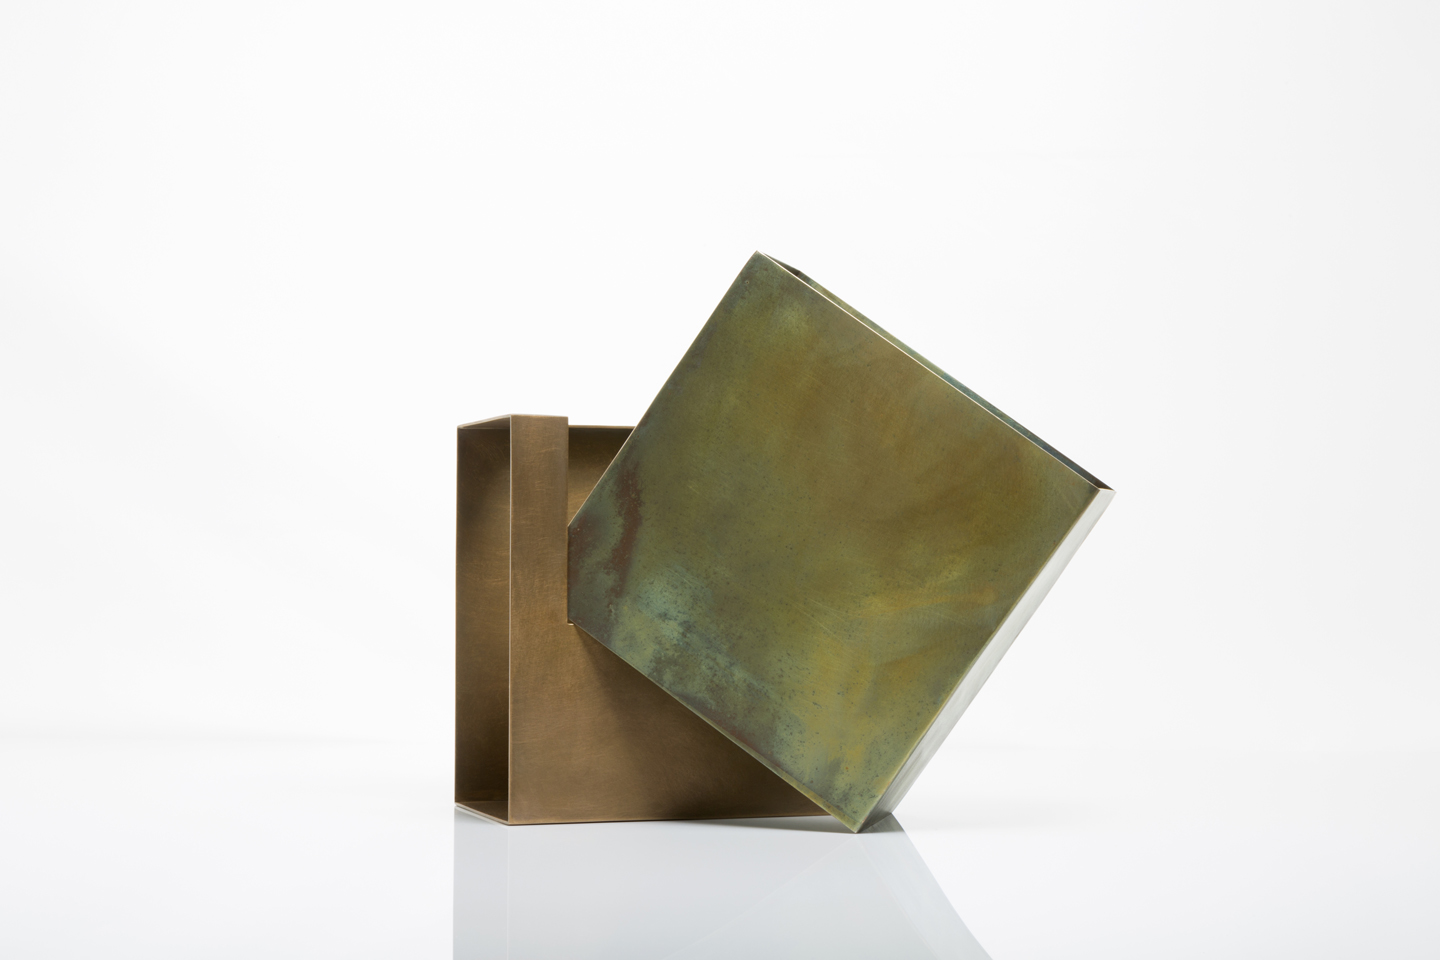 Juliette_Bigley_Squares_pair_Mixed_metals_2018_8.jpg